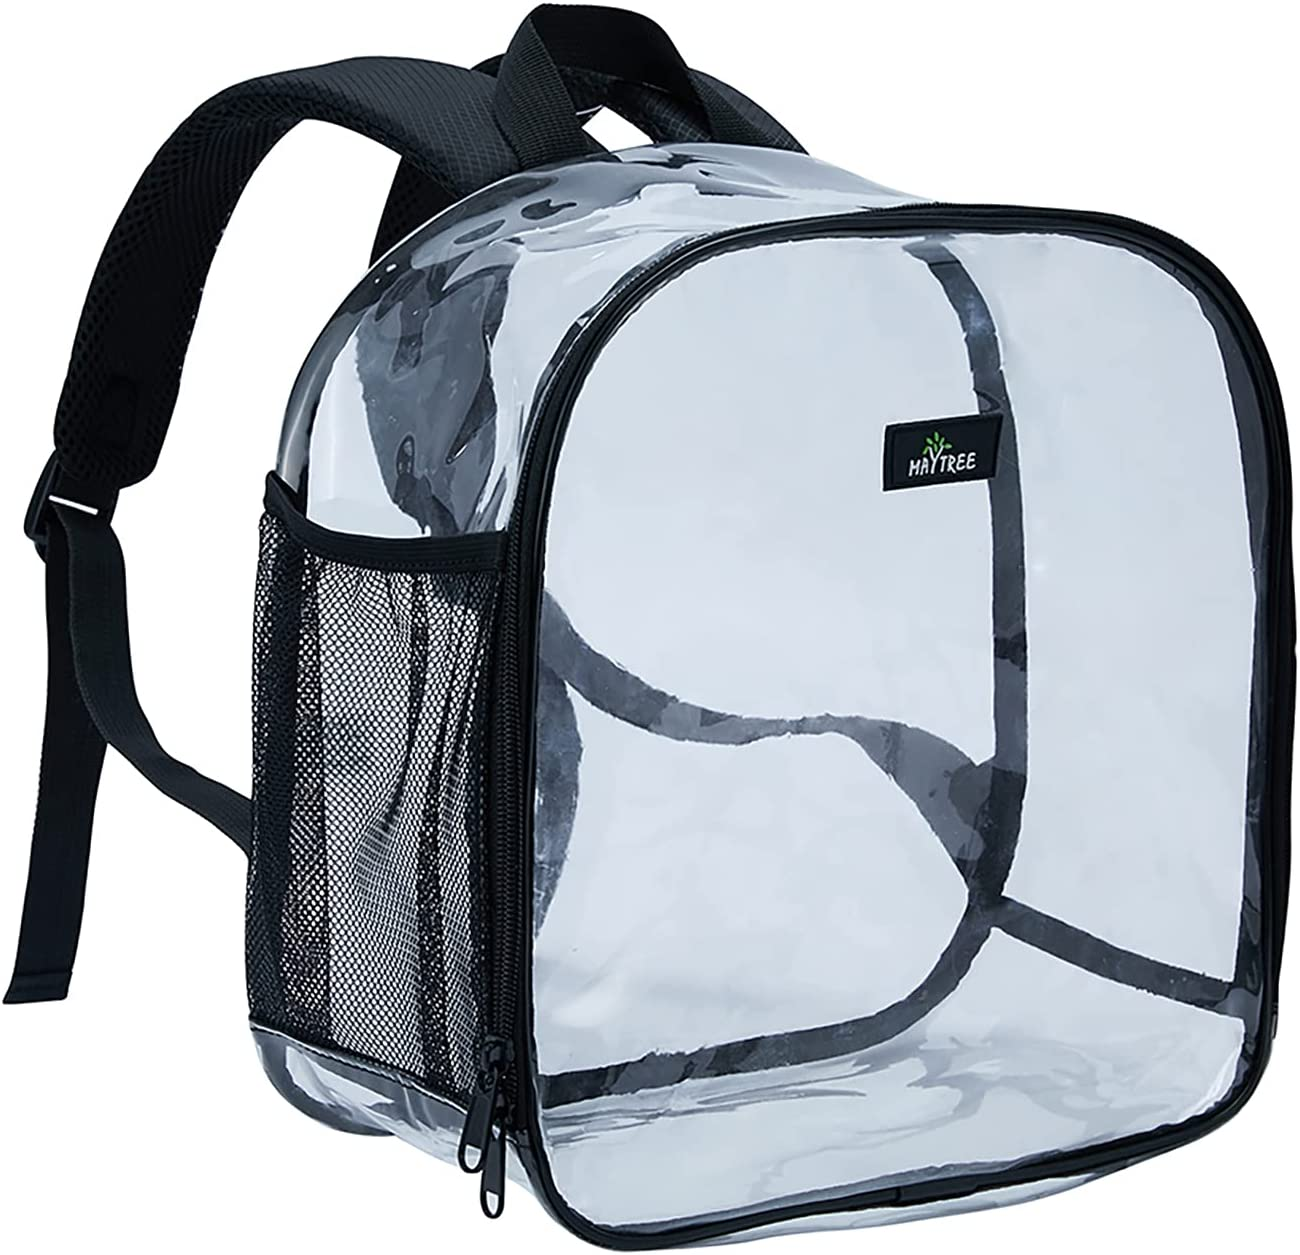 Small Clear Opening large release sale Backpack Stadium Max 76% OFF Approved for Concert Work Beach